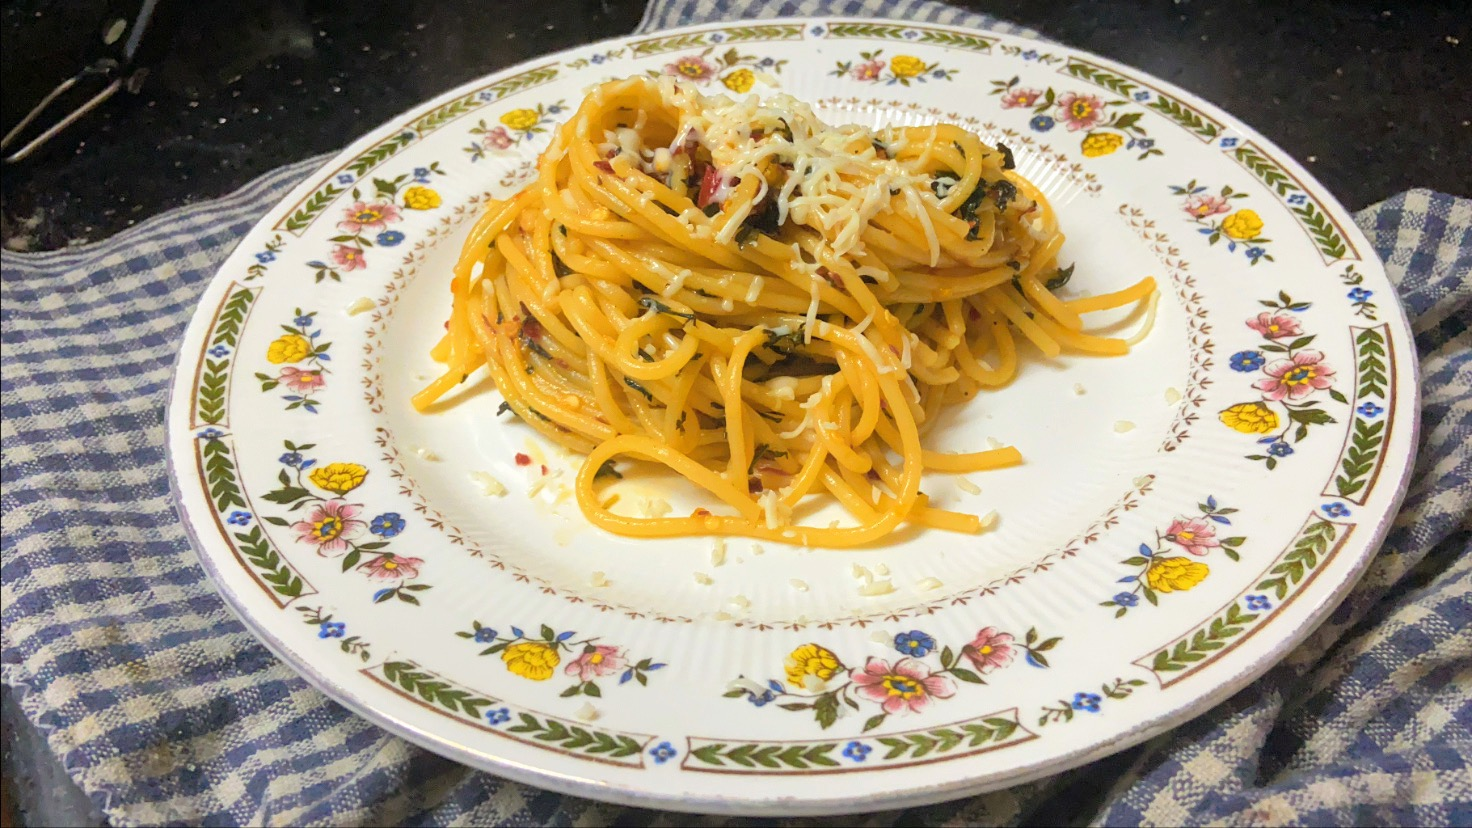 a soul food story. recipes, pasta recipes, spaghetti aglio olio. spaghetti pasta recipe